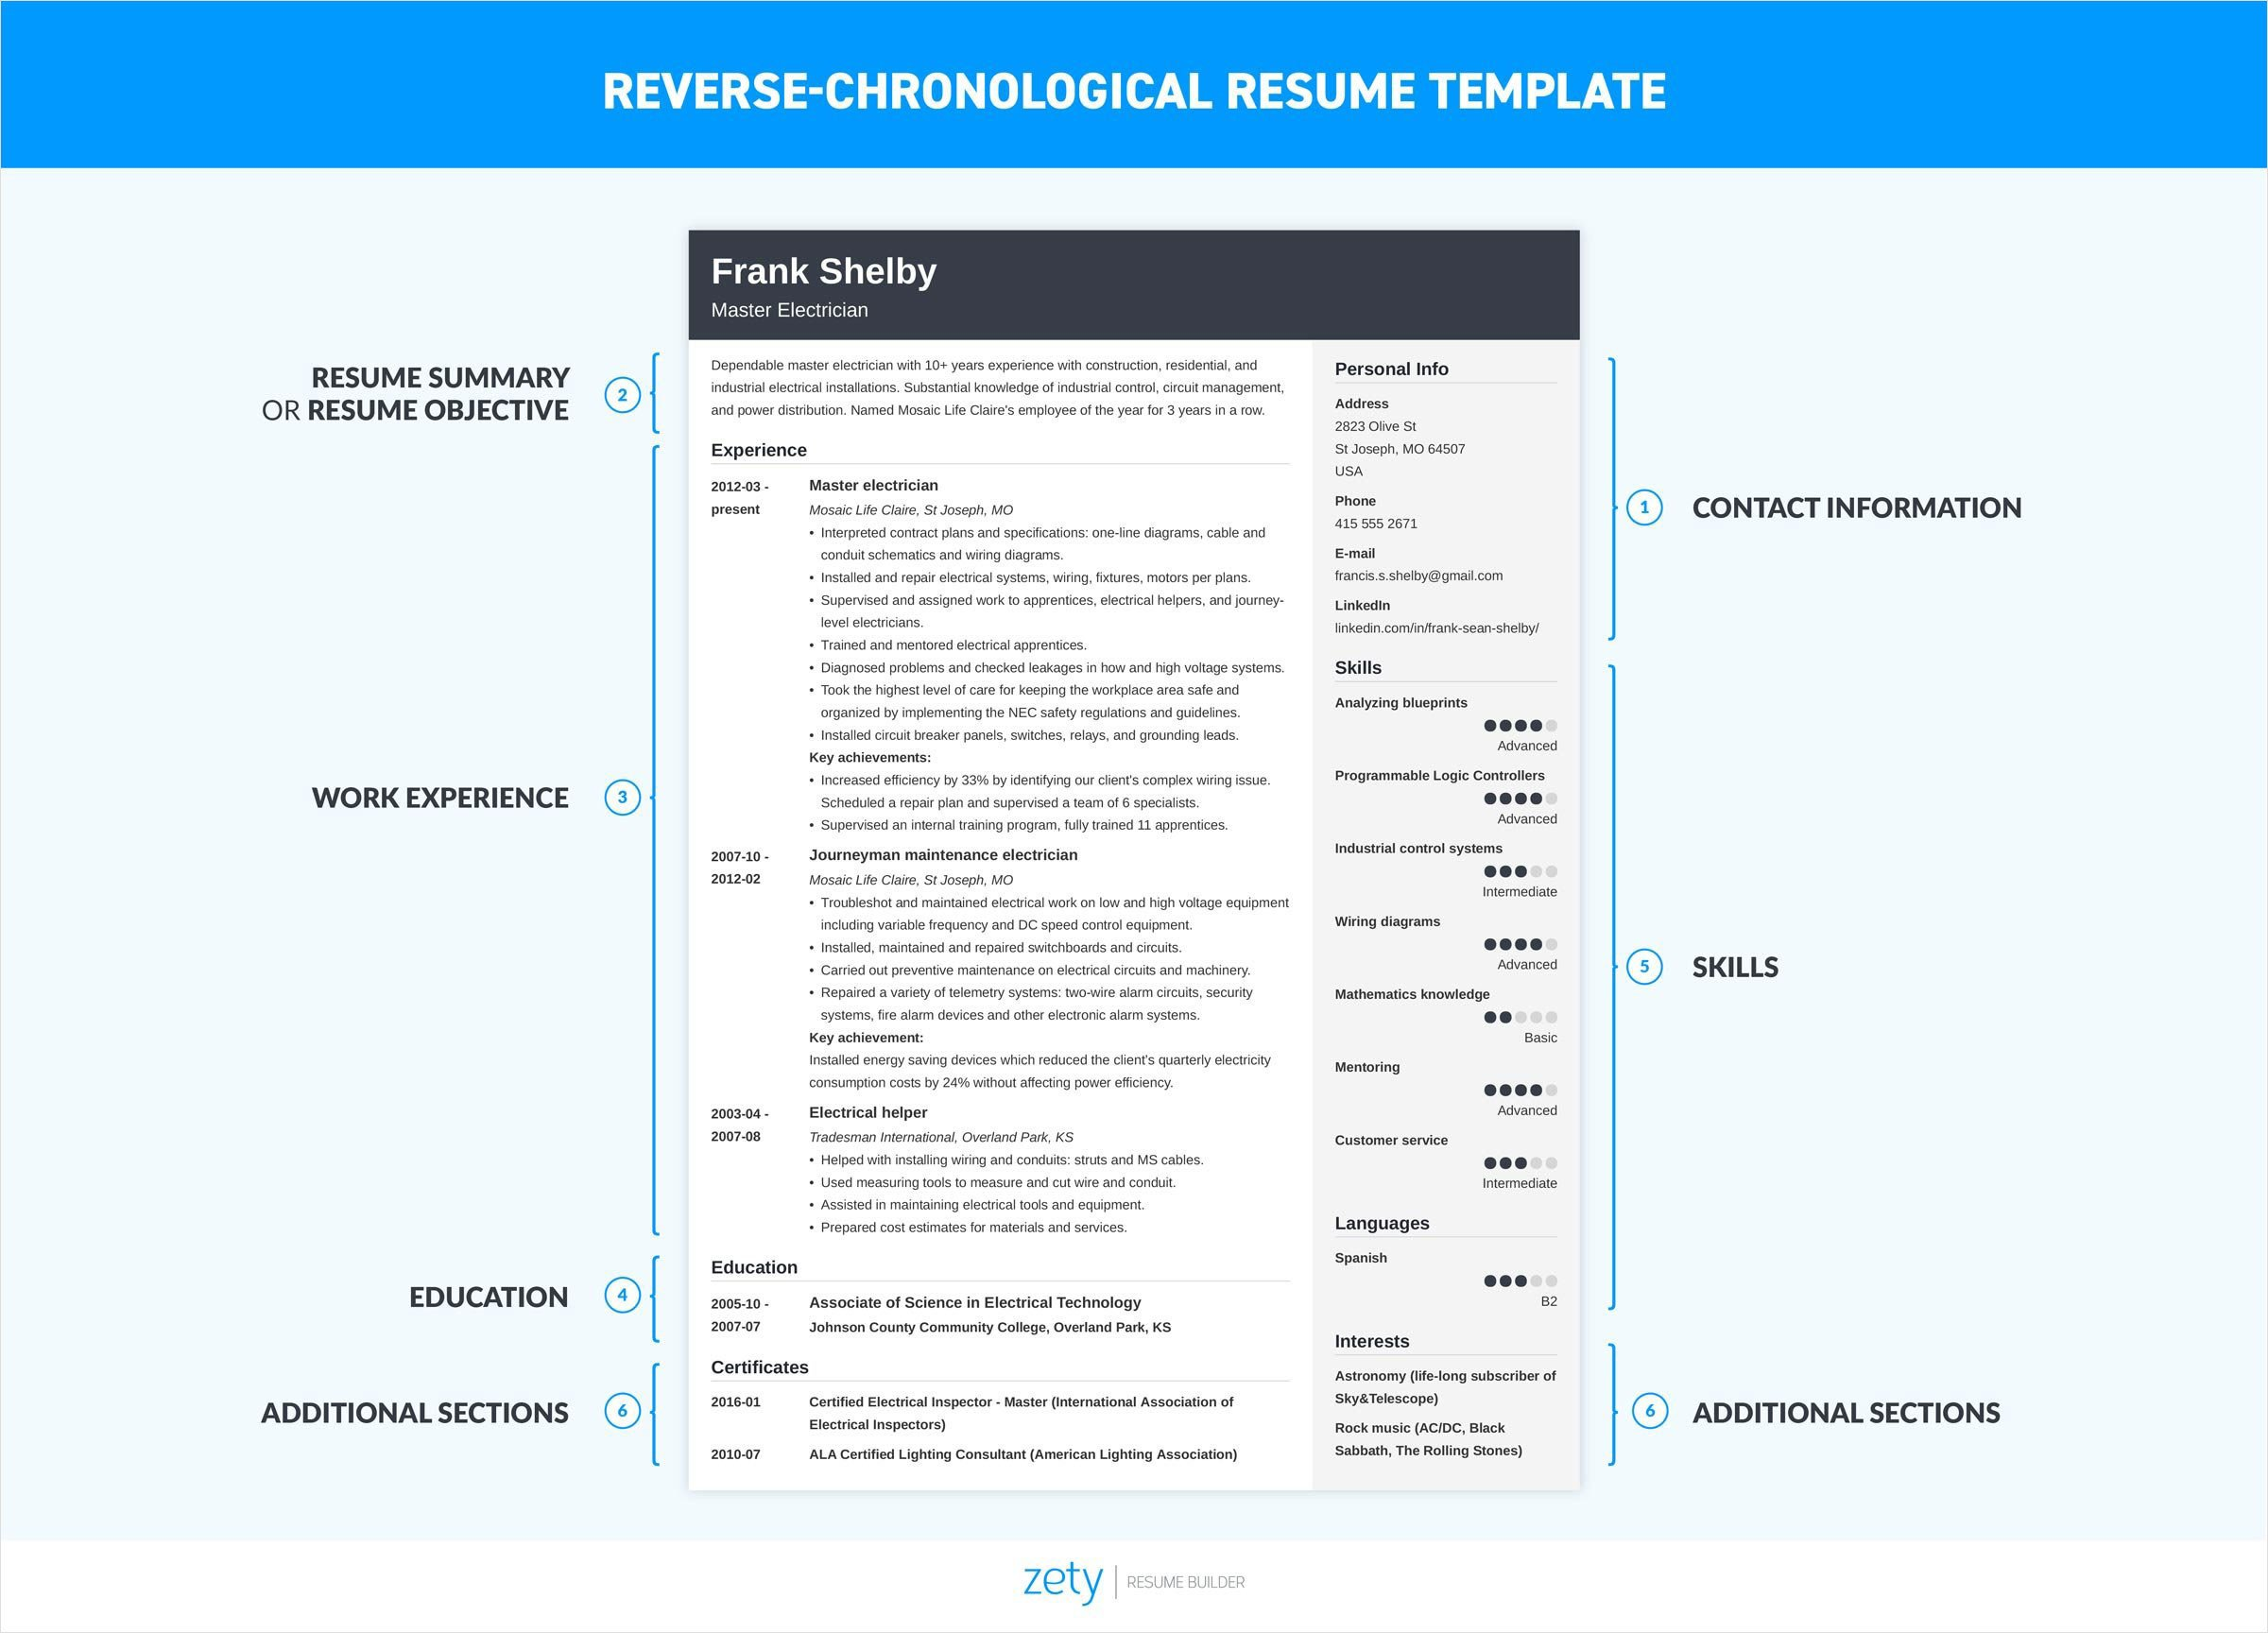 how to make a resume using the reverse chronological resume format